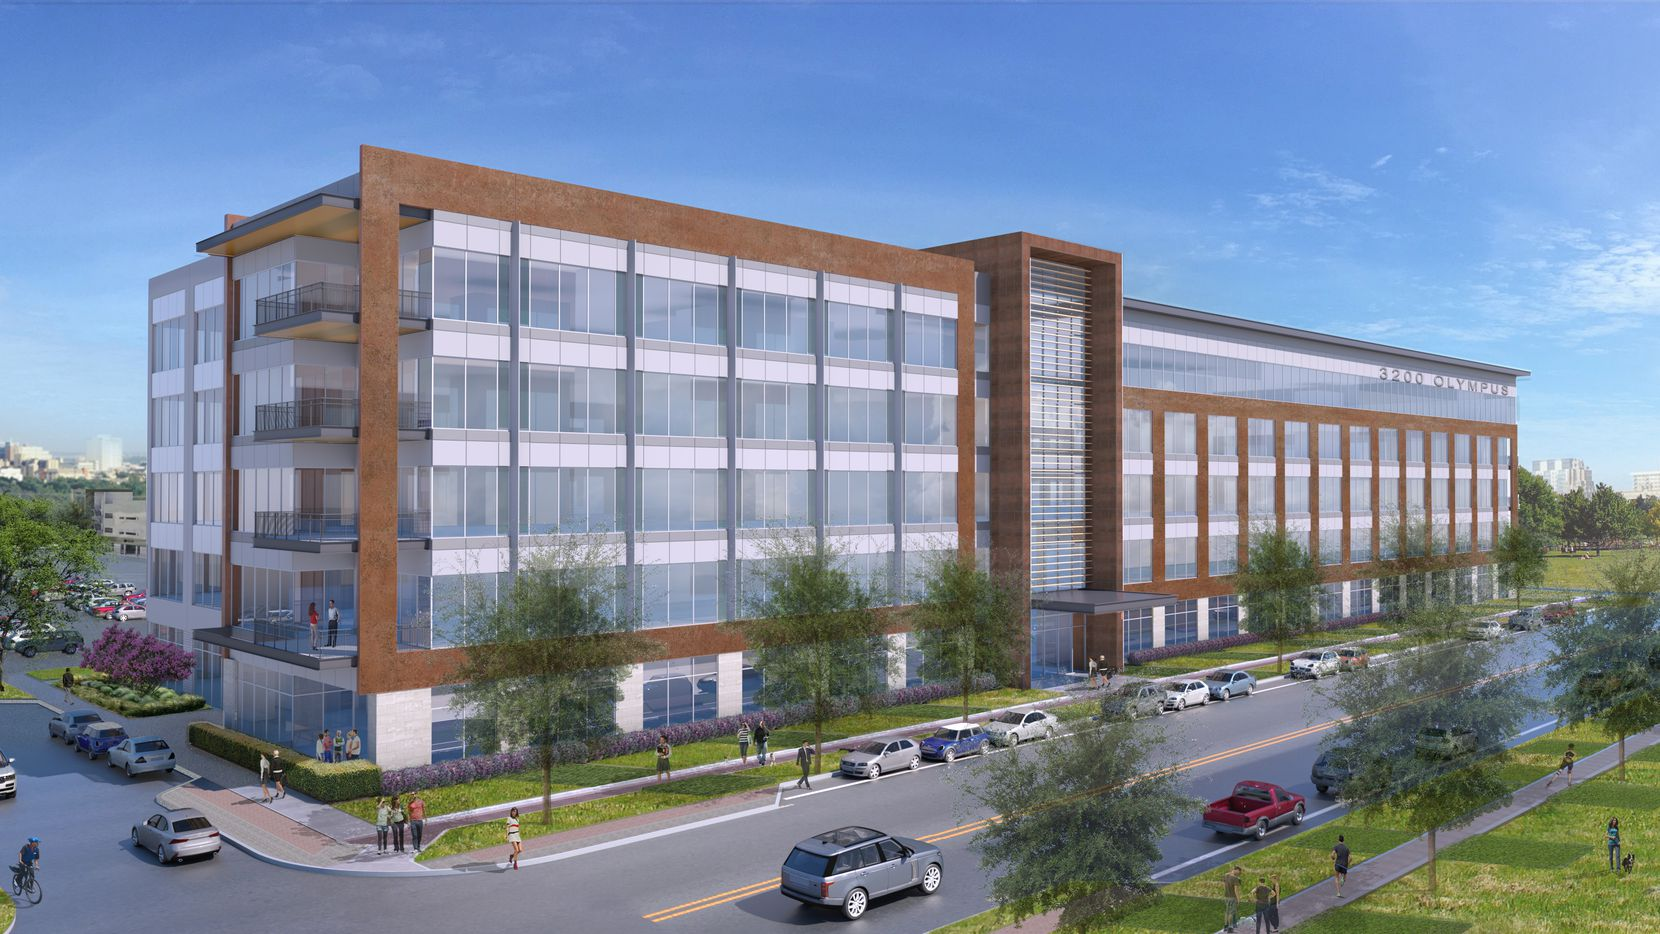 The 3200 Olympus Boulevard office project is part of the 1,000-acre Cypress Waters development.